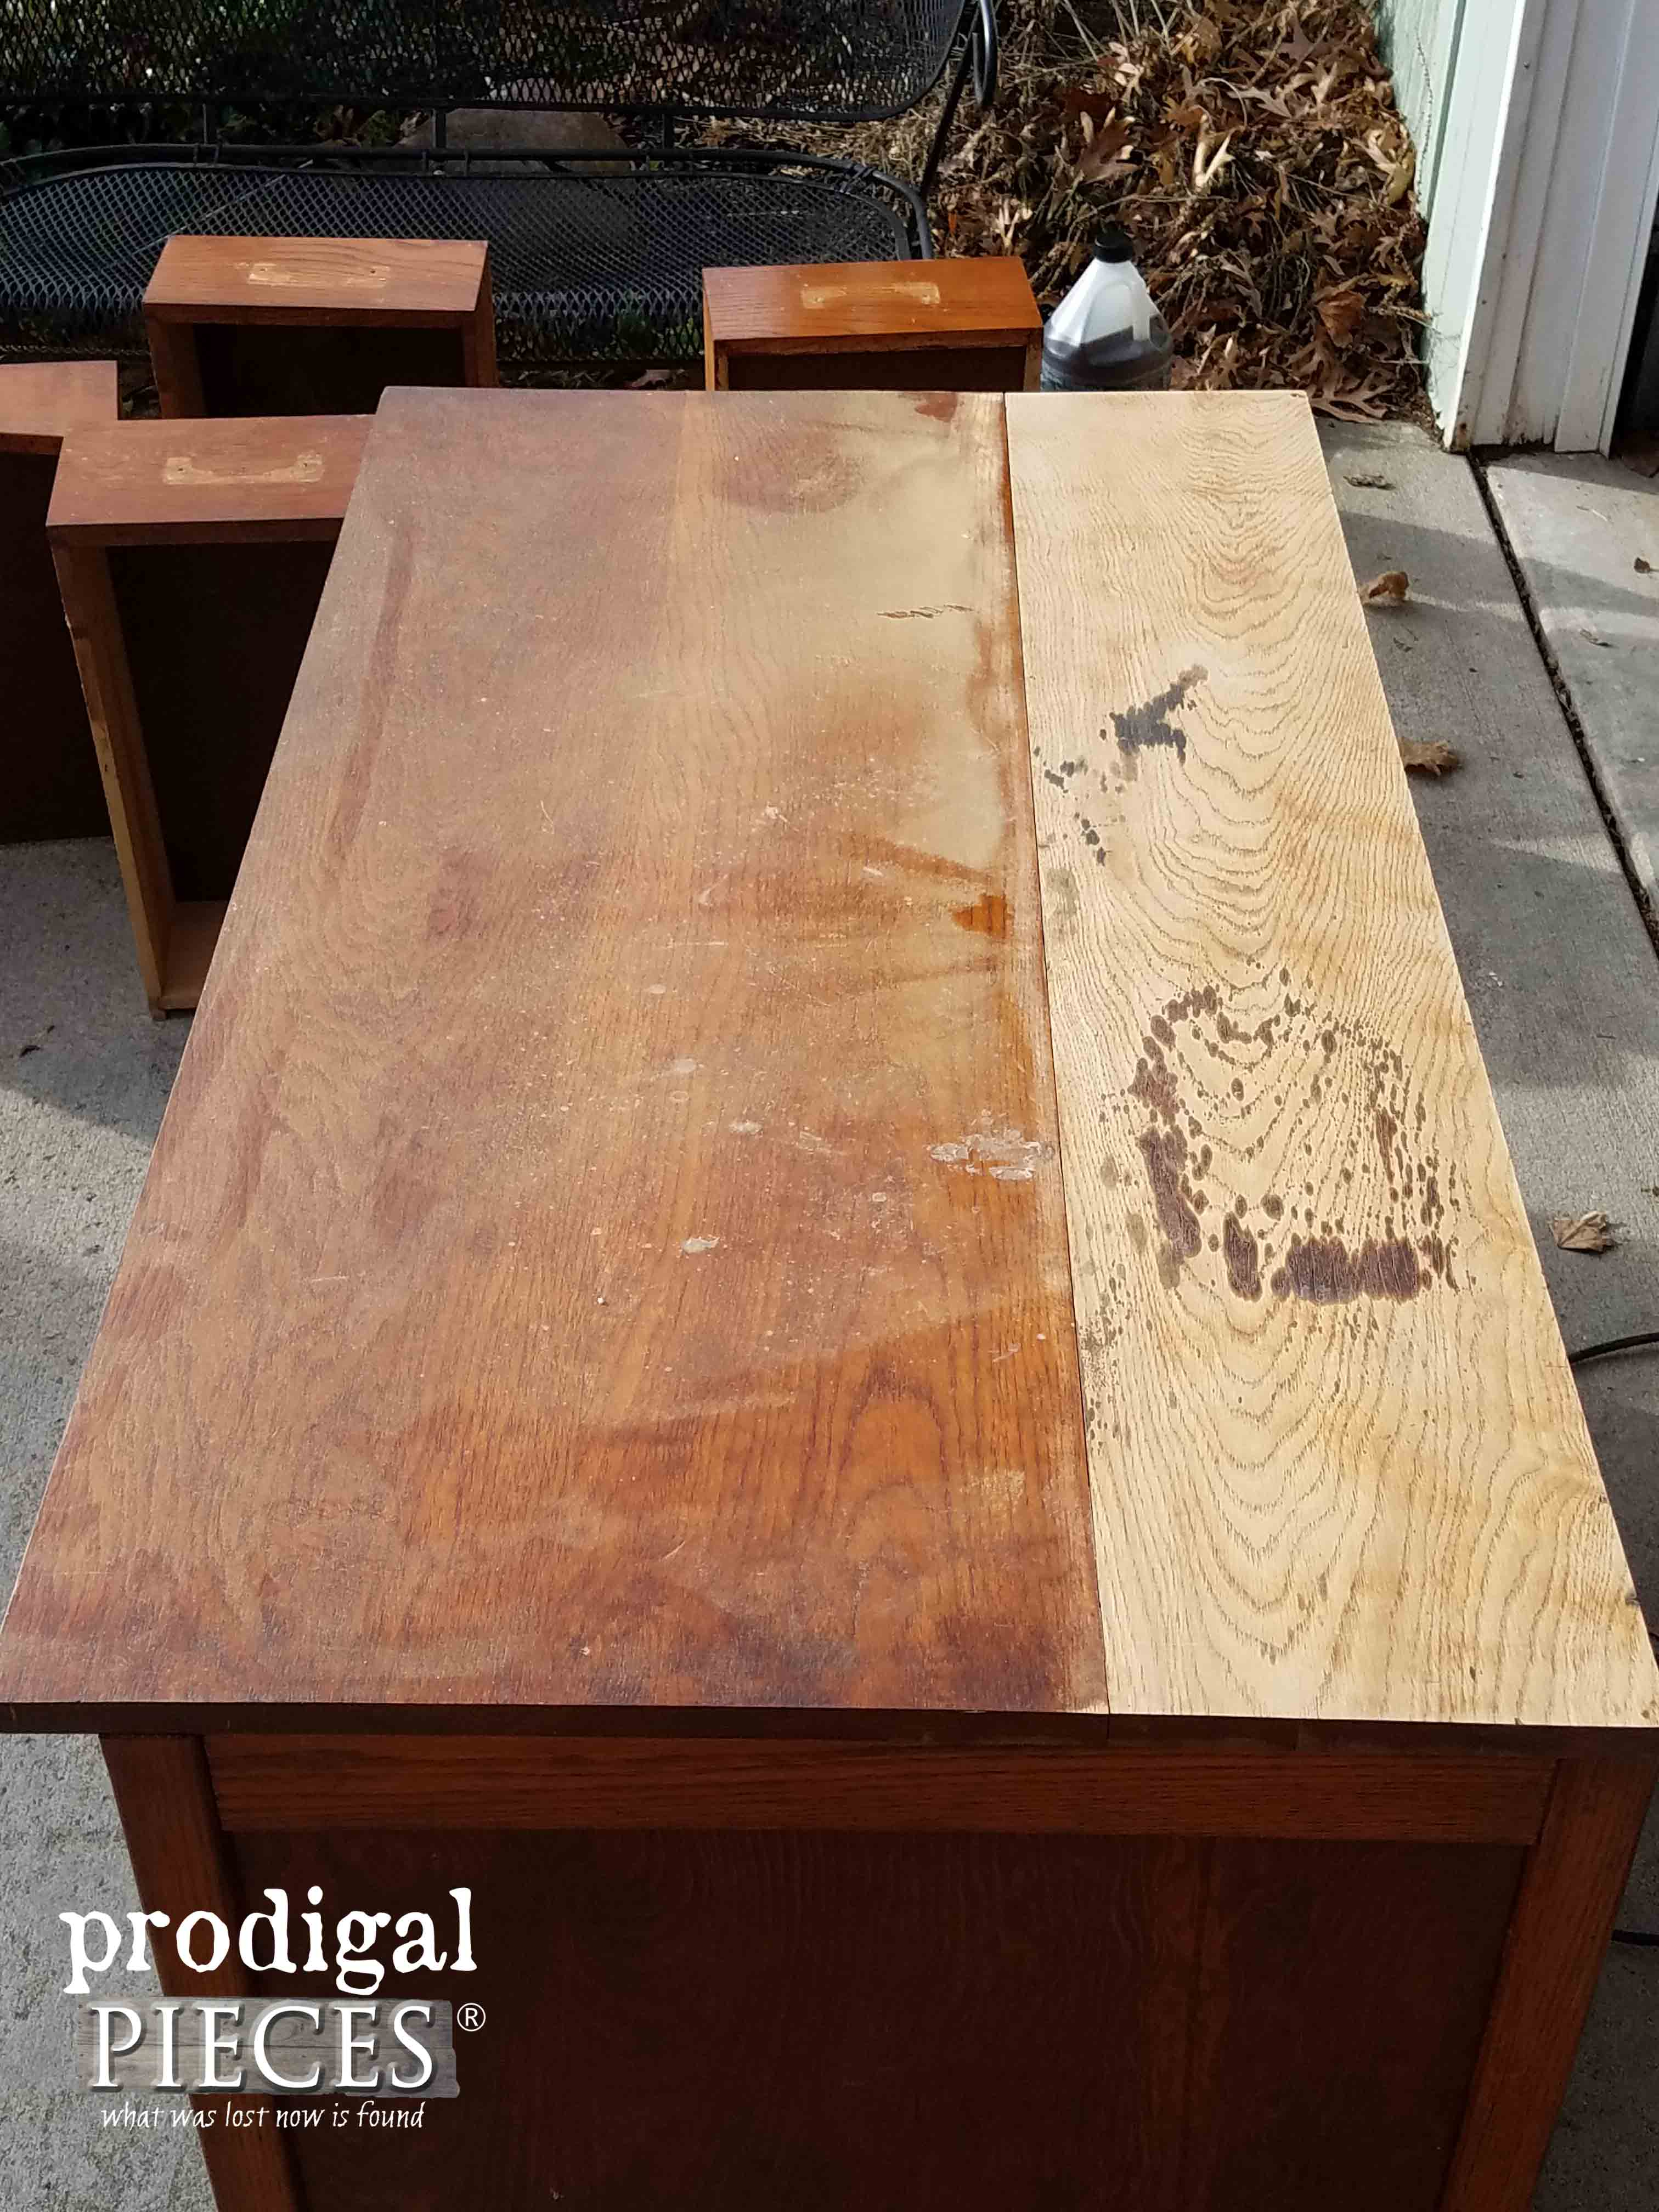 Sanded Desk Top | Prodigal Pieces | prodigalpieces.com